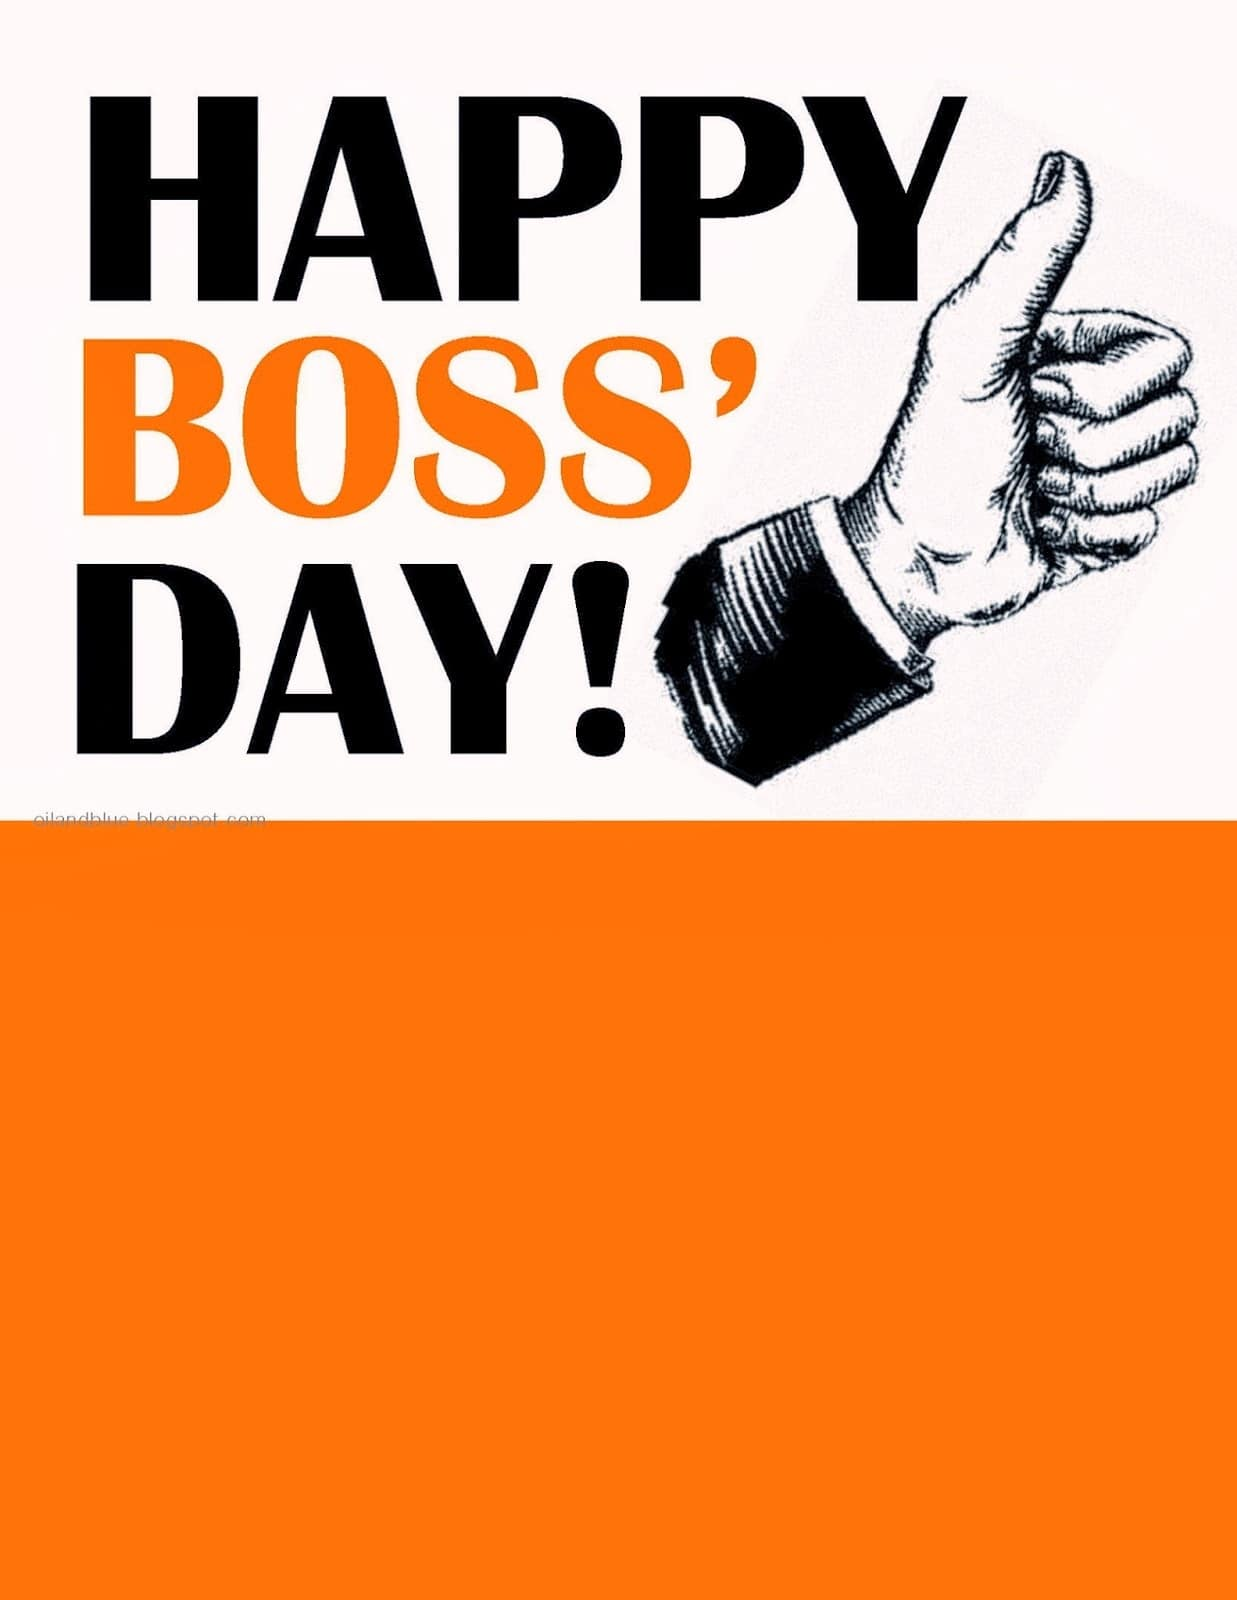 Happy boss day images free hd images boss day greeting card m4hsunfo